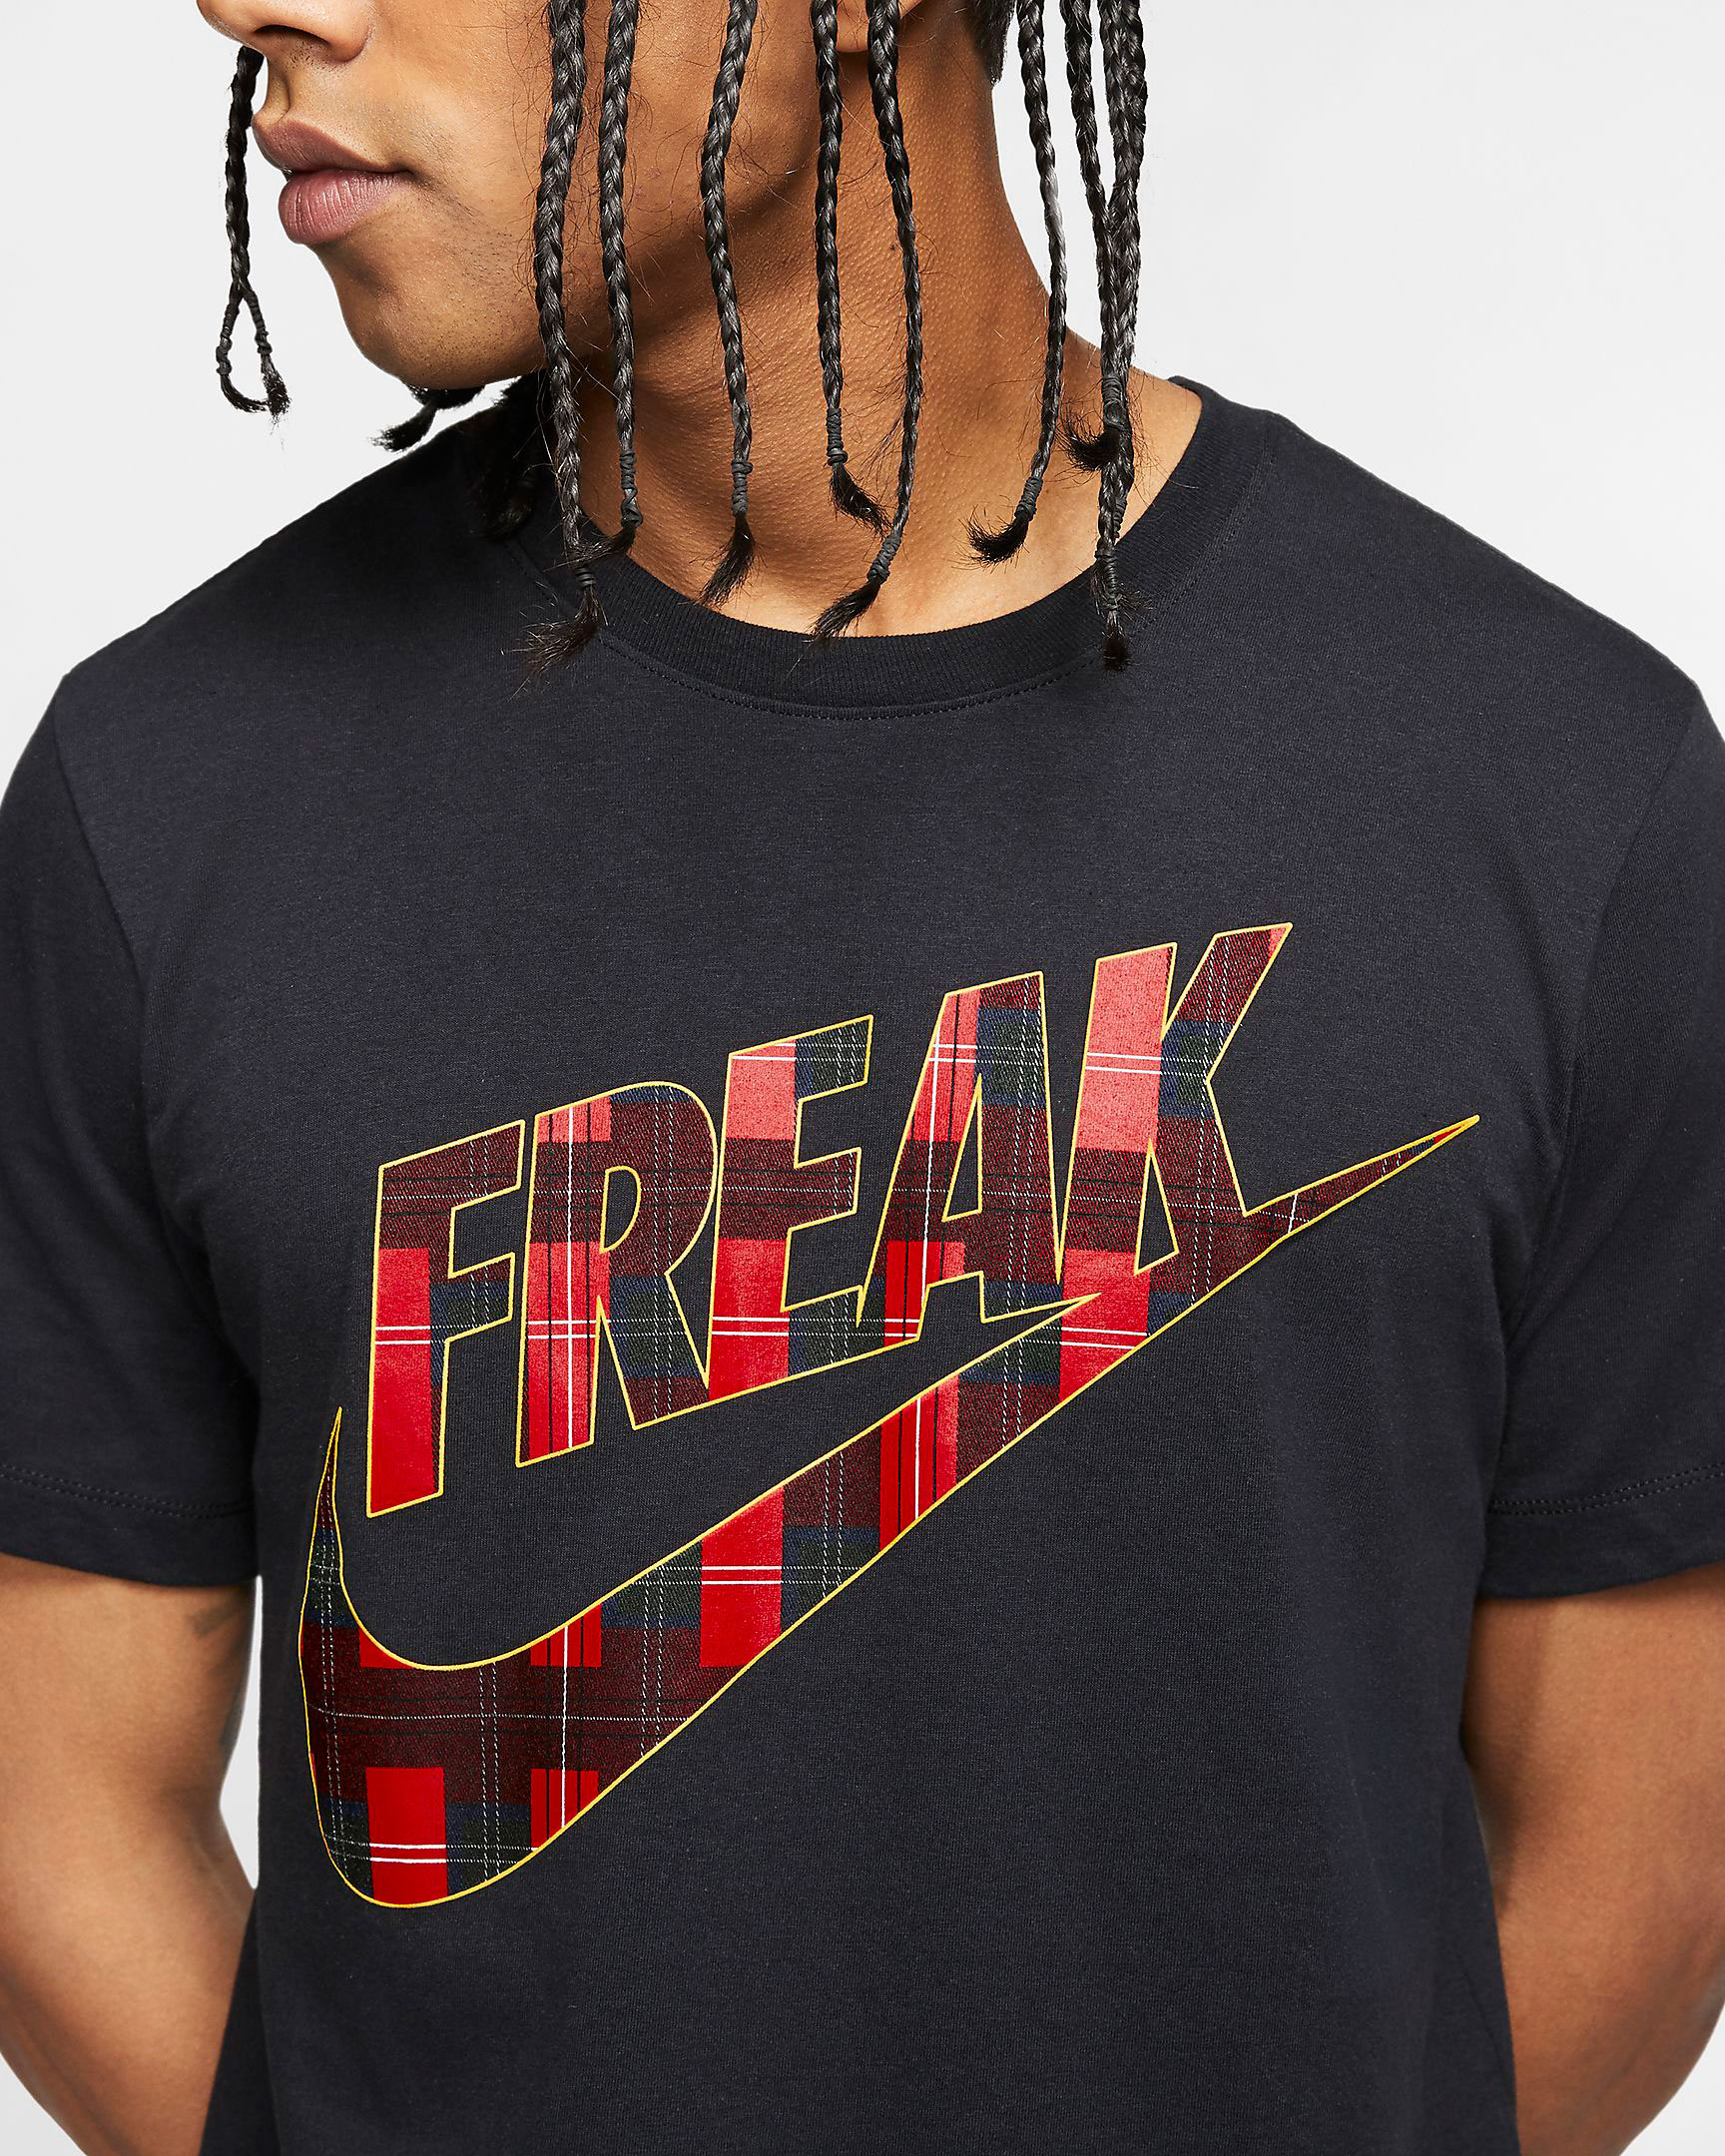 nike-zoom-freak-1-employee-of-the-month-shirt-black-1